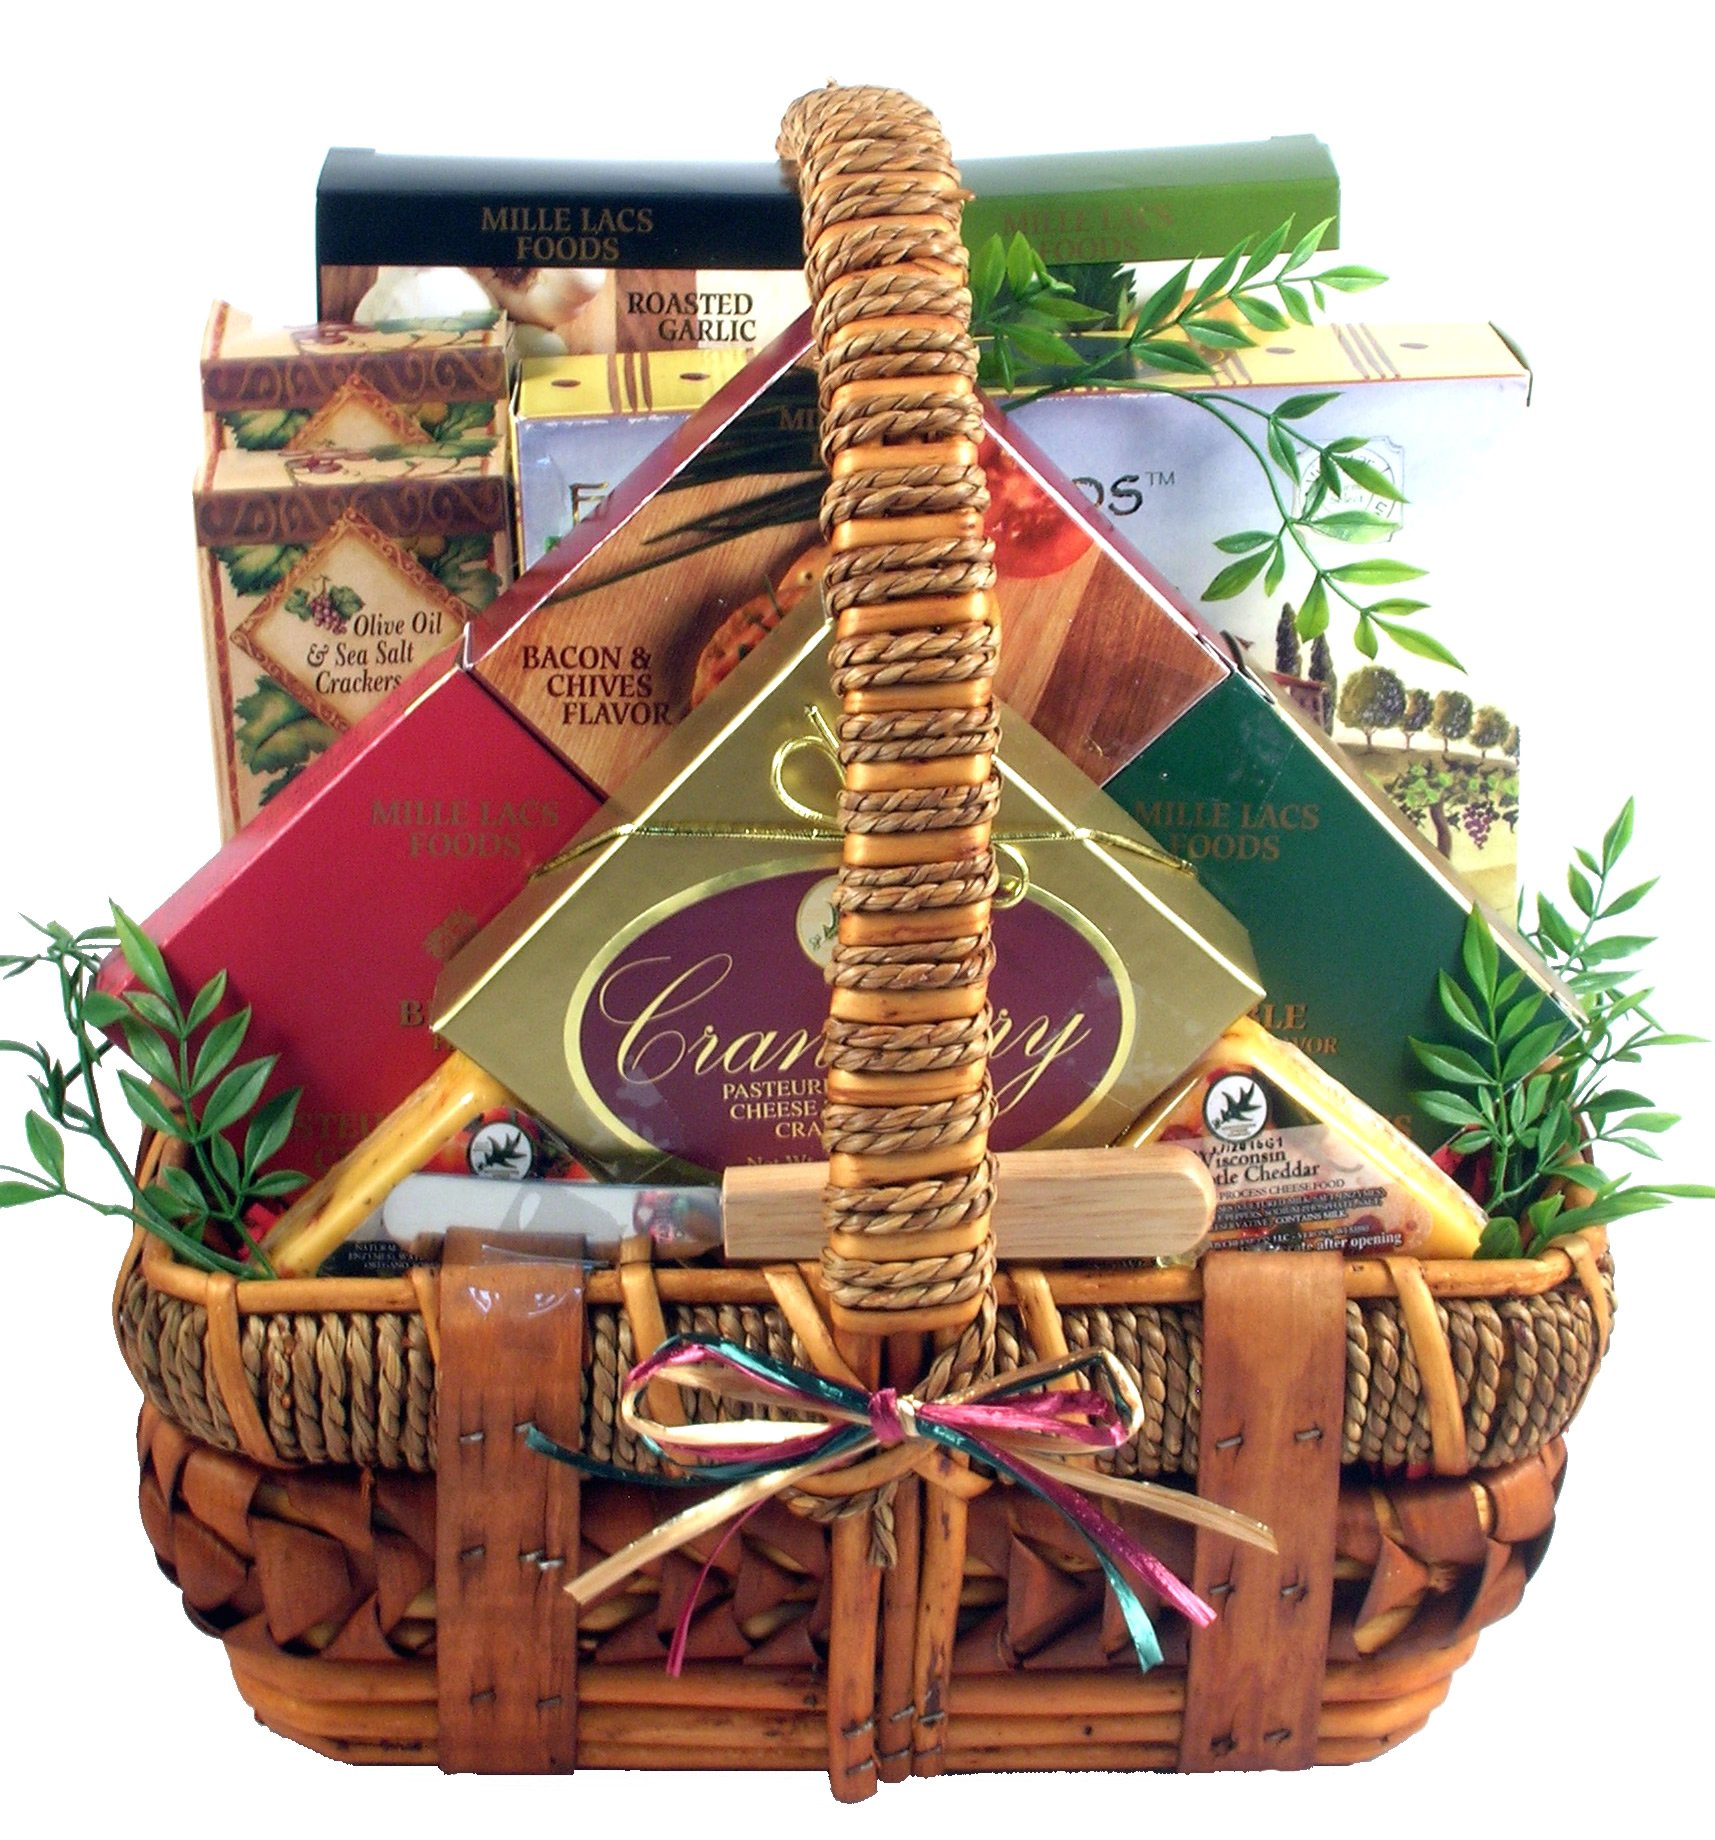 Gift Basket Village - Cheese Lover Gift Basket with Assorted Specialty Cheeses & Crackers - Makes A Great Father's Day Gift Basket For Dad